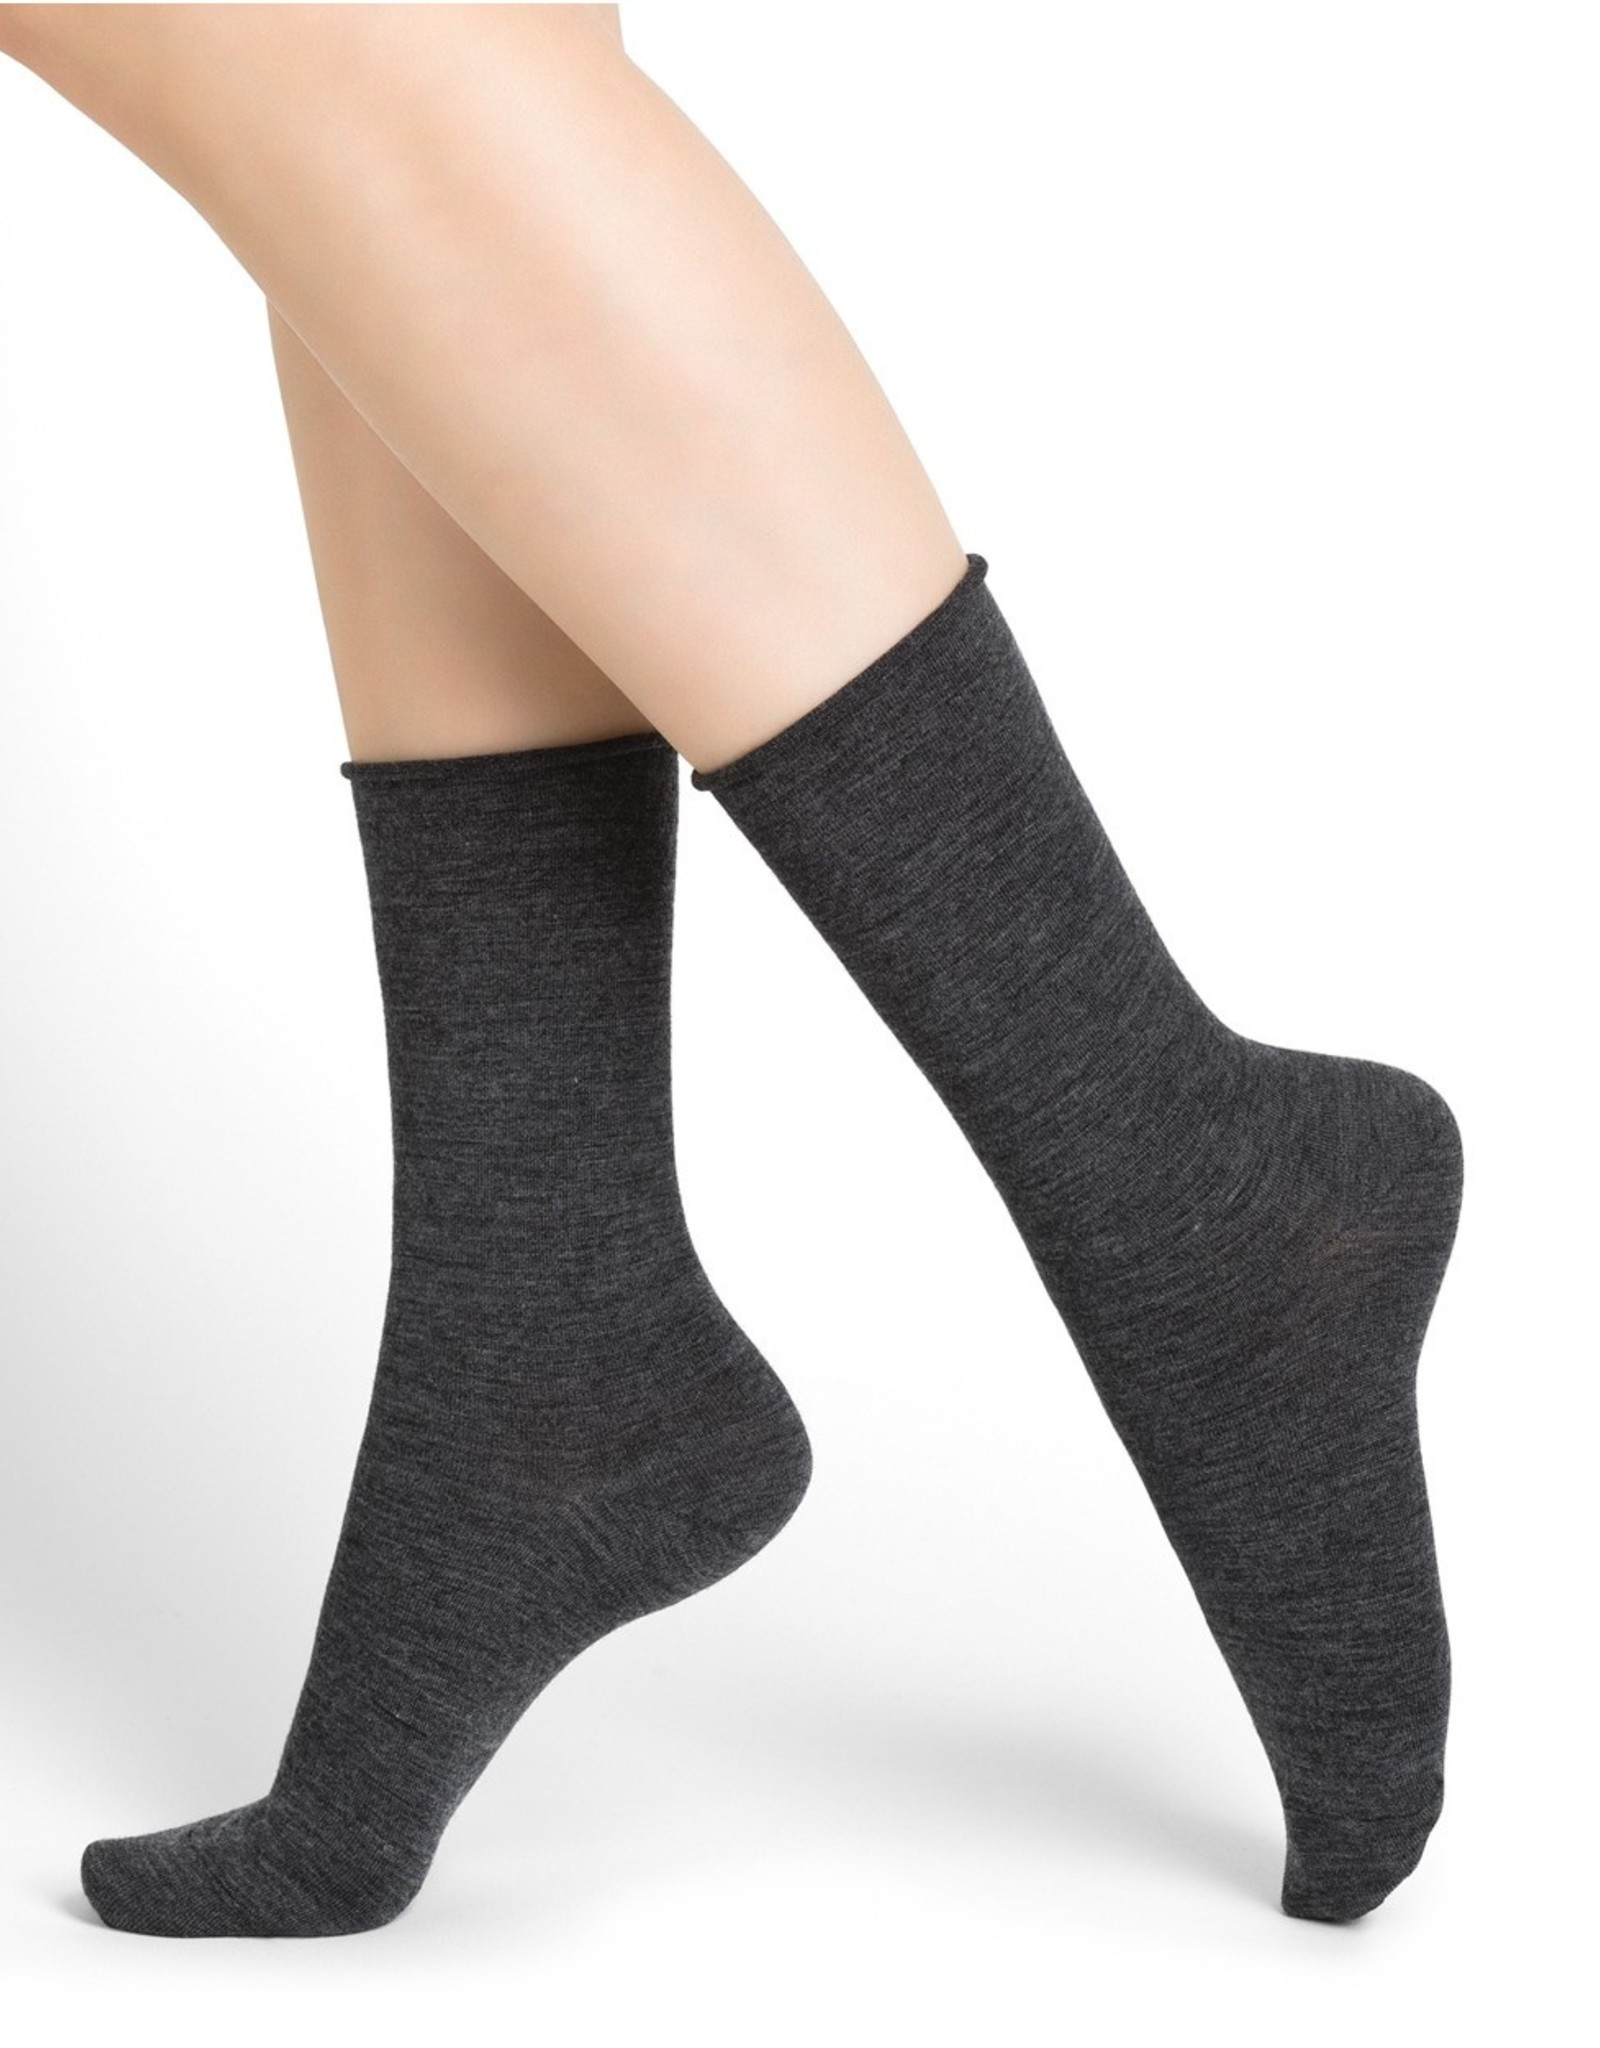 Bleuforet Fine Wool Socks with Cotton Inside